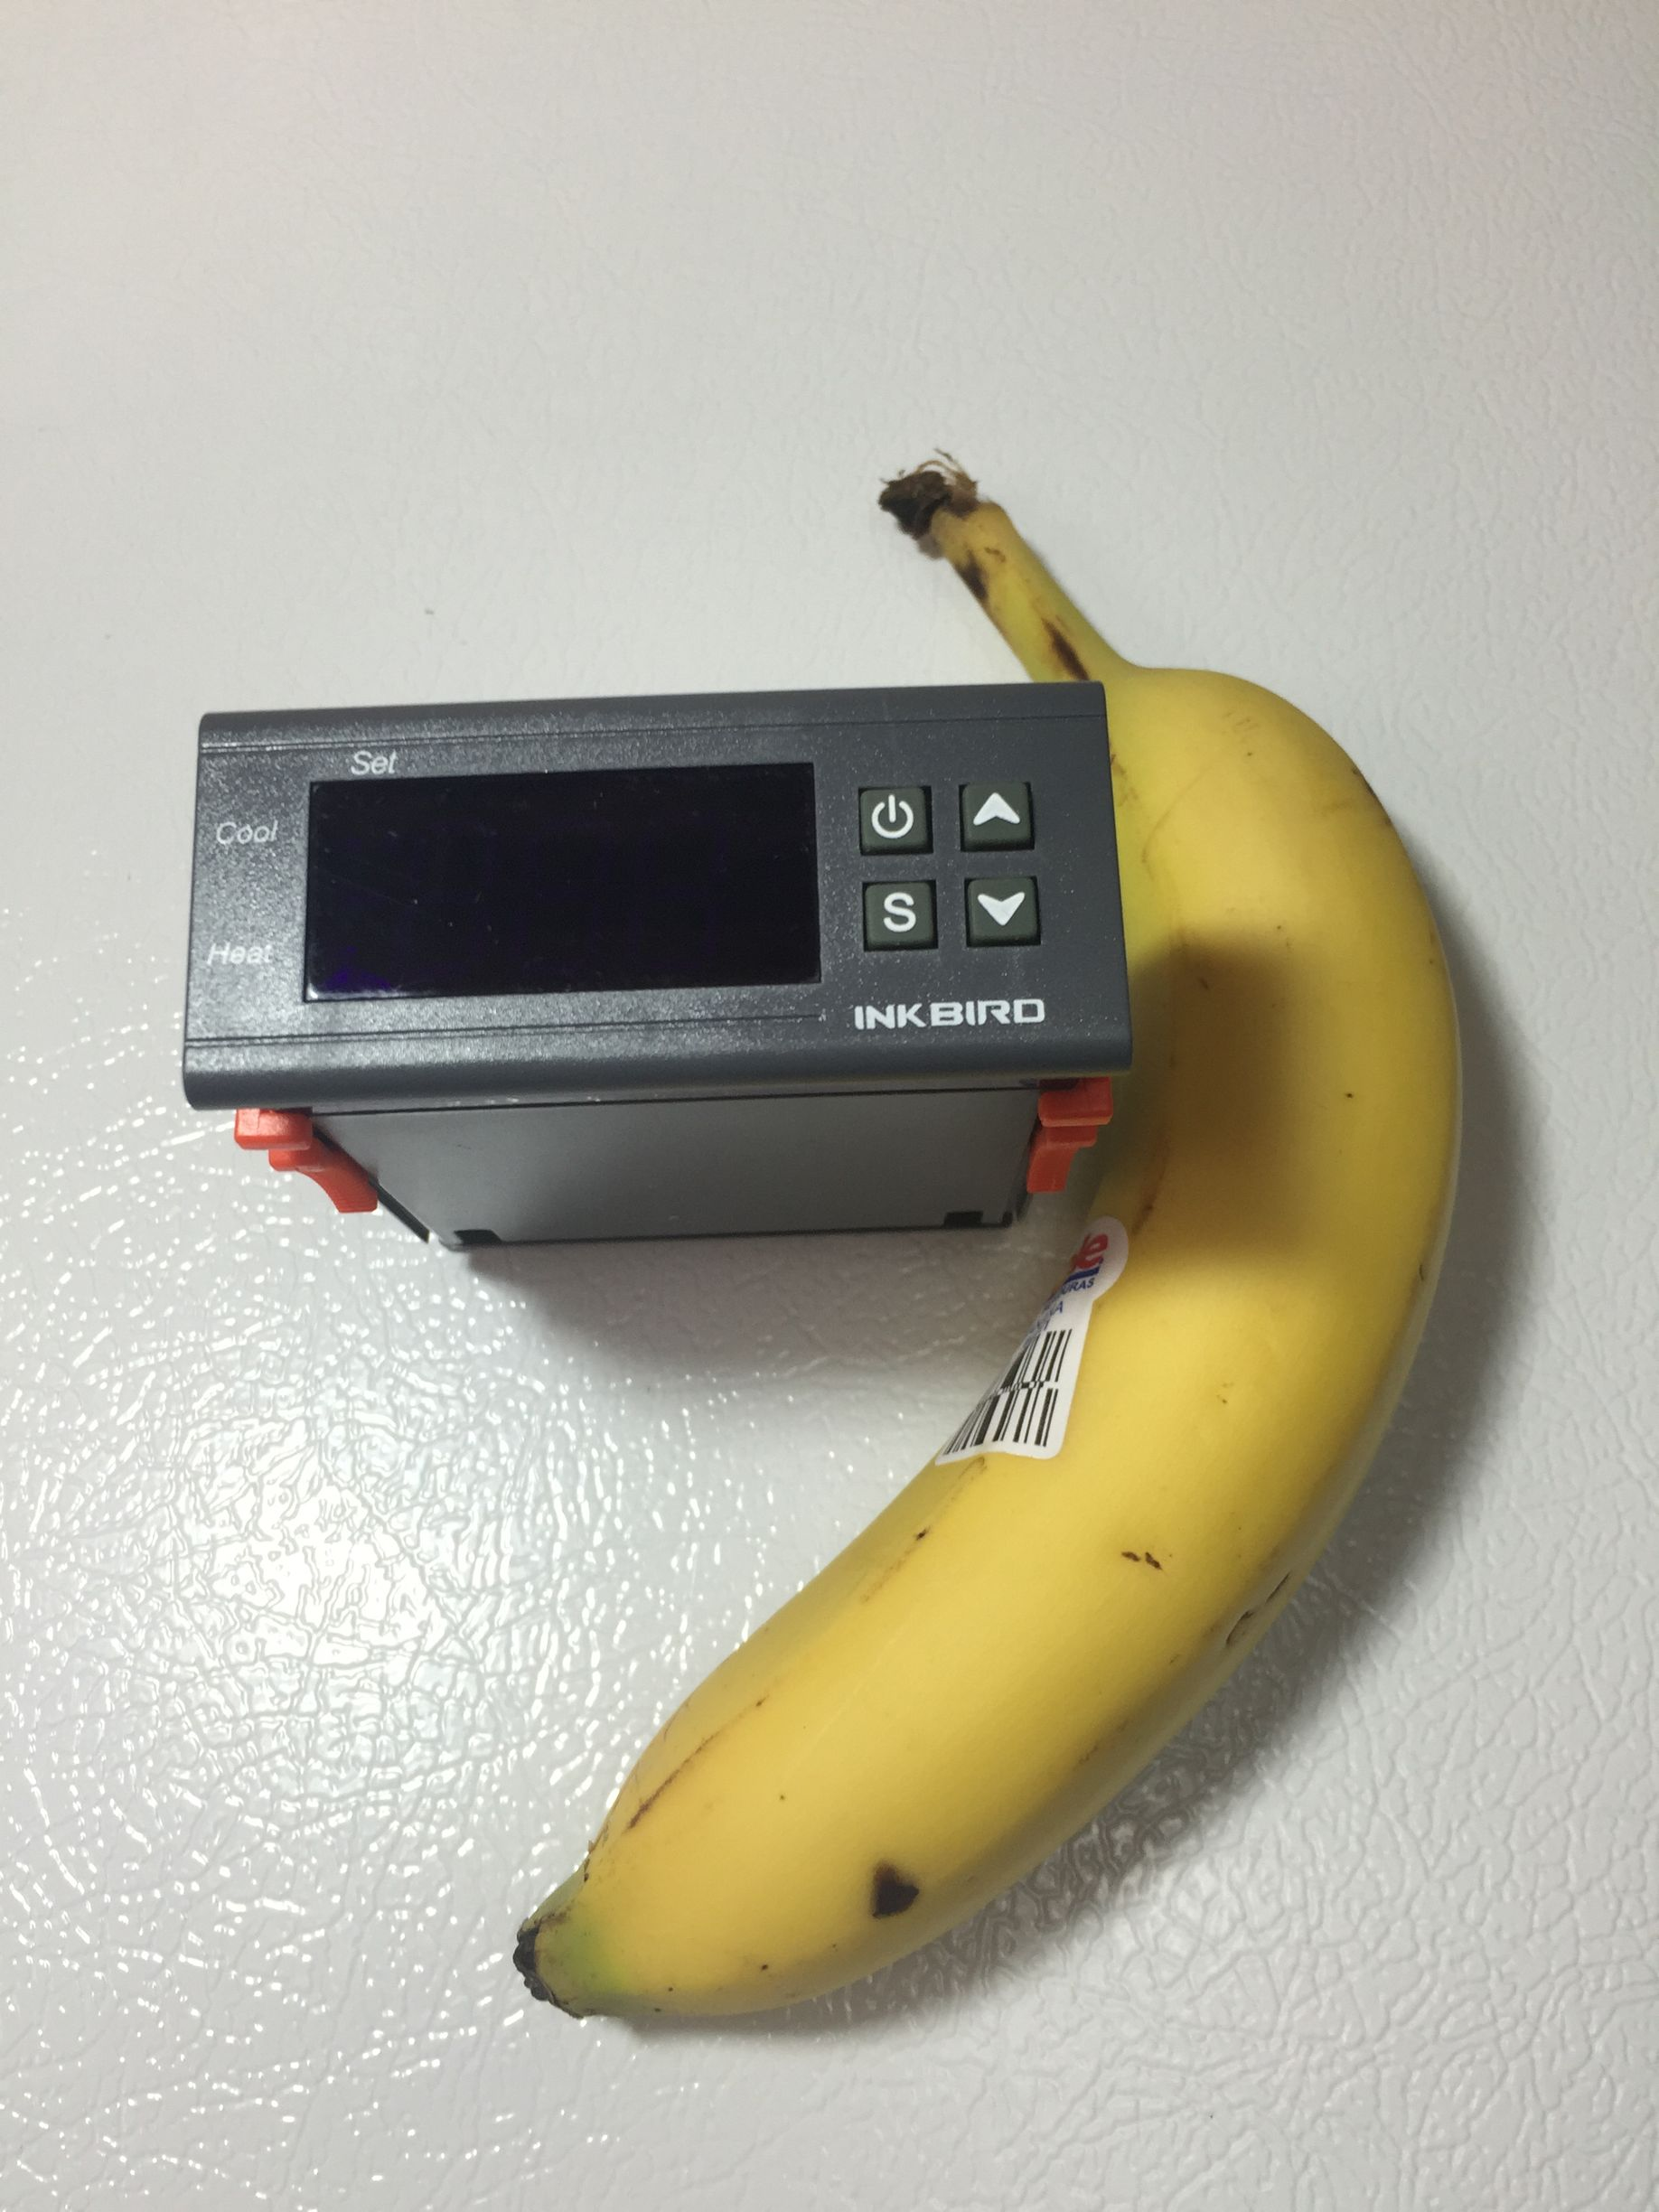 A Look At Itc 1000 Temperature Controller Pdf Manuals Build Kegerator Using Stc1000 Aquarium Temp For Size Comparison Next To Banana Yes I Ate This It Was Pretty Tasty